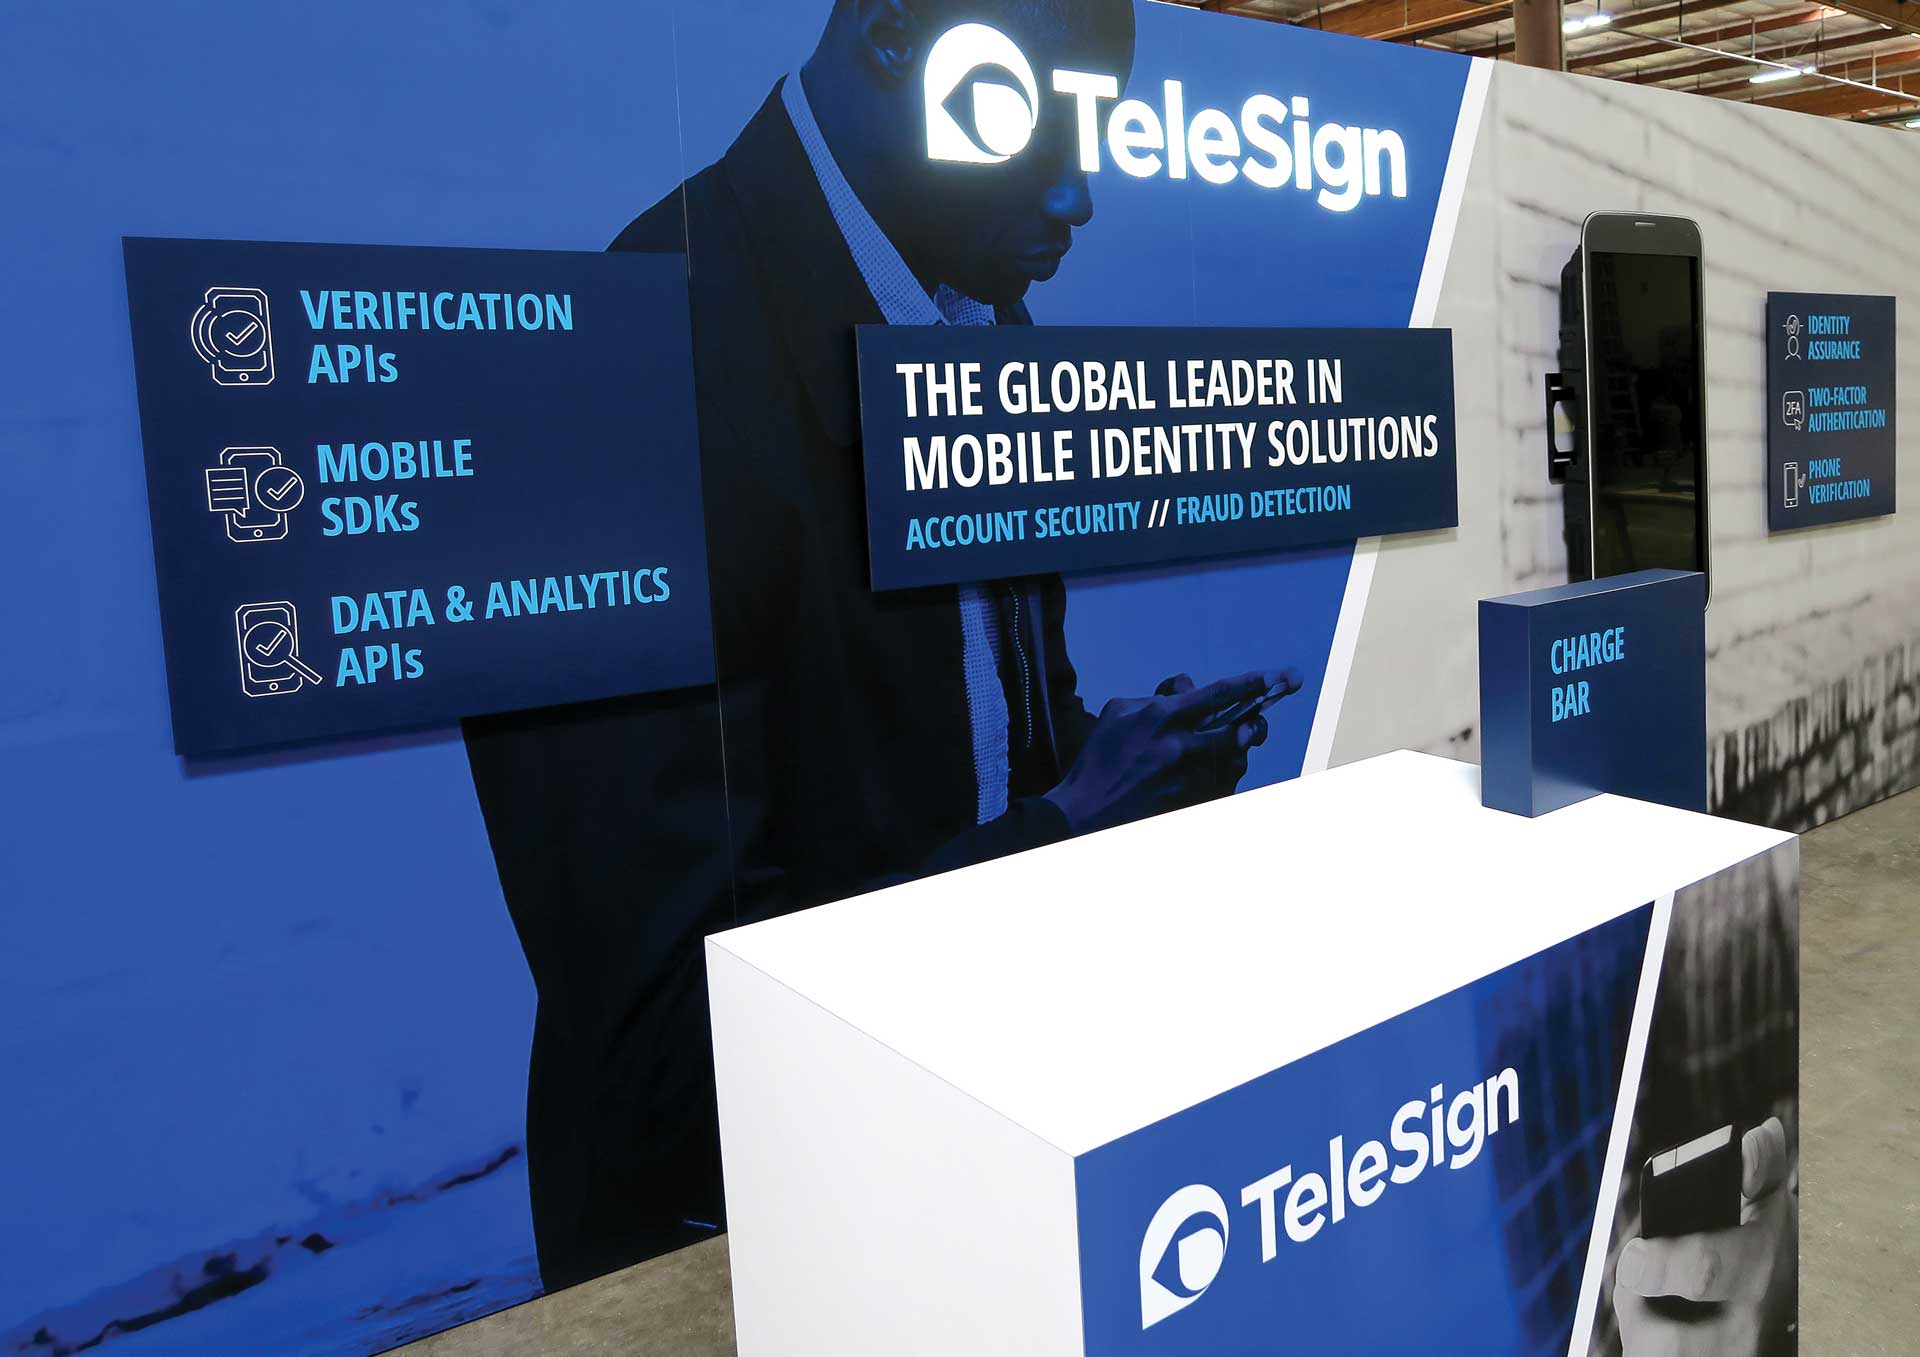 telesign-brand-exhibition-stand-1